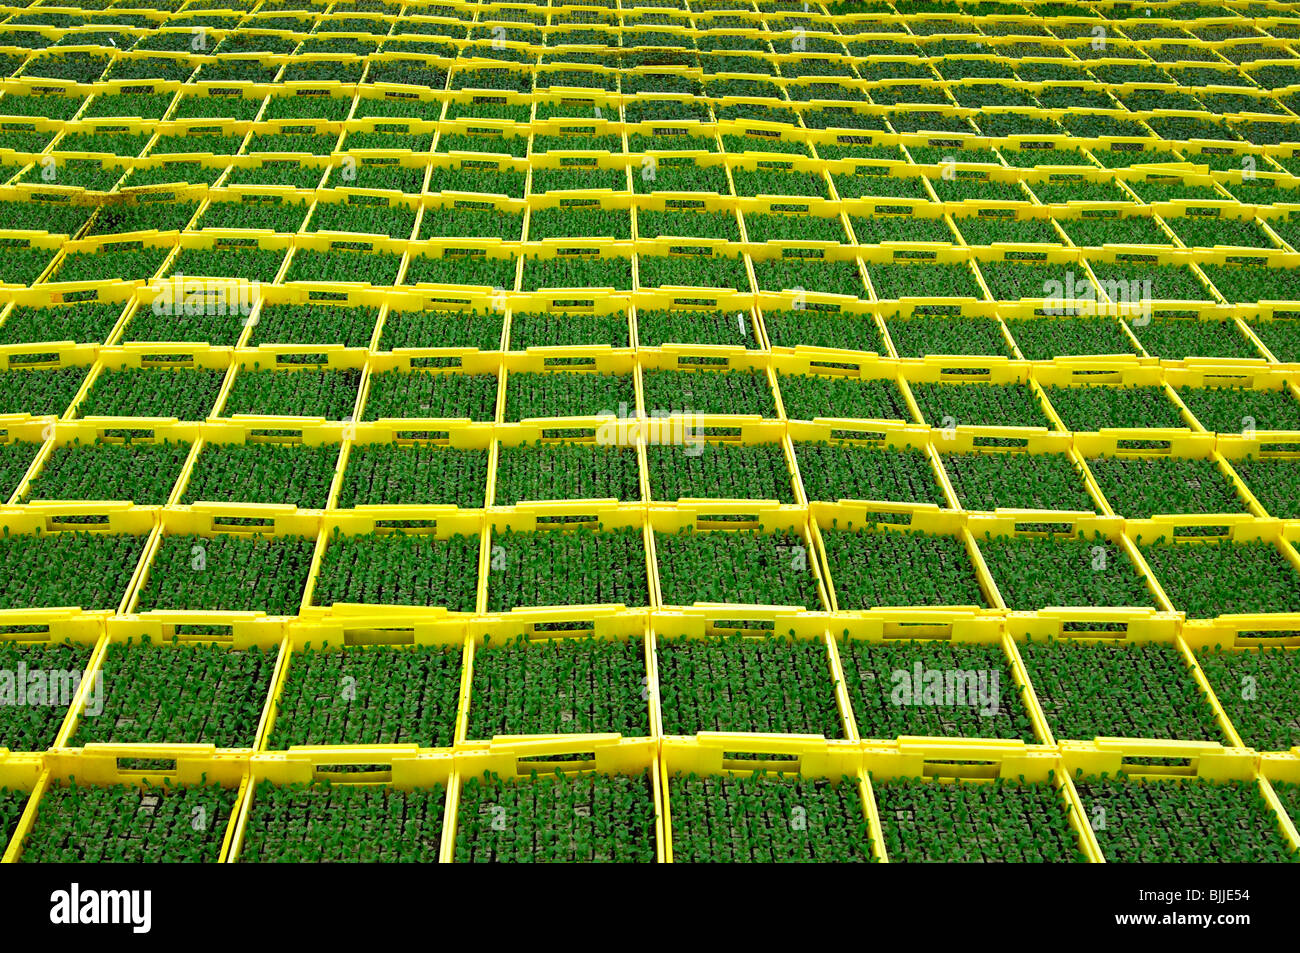 Seedlings in planters in a hothouse of a nursery - Stock Image